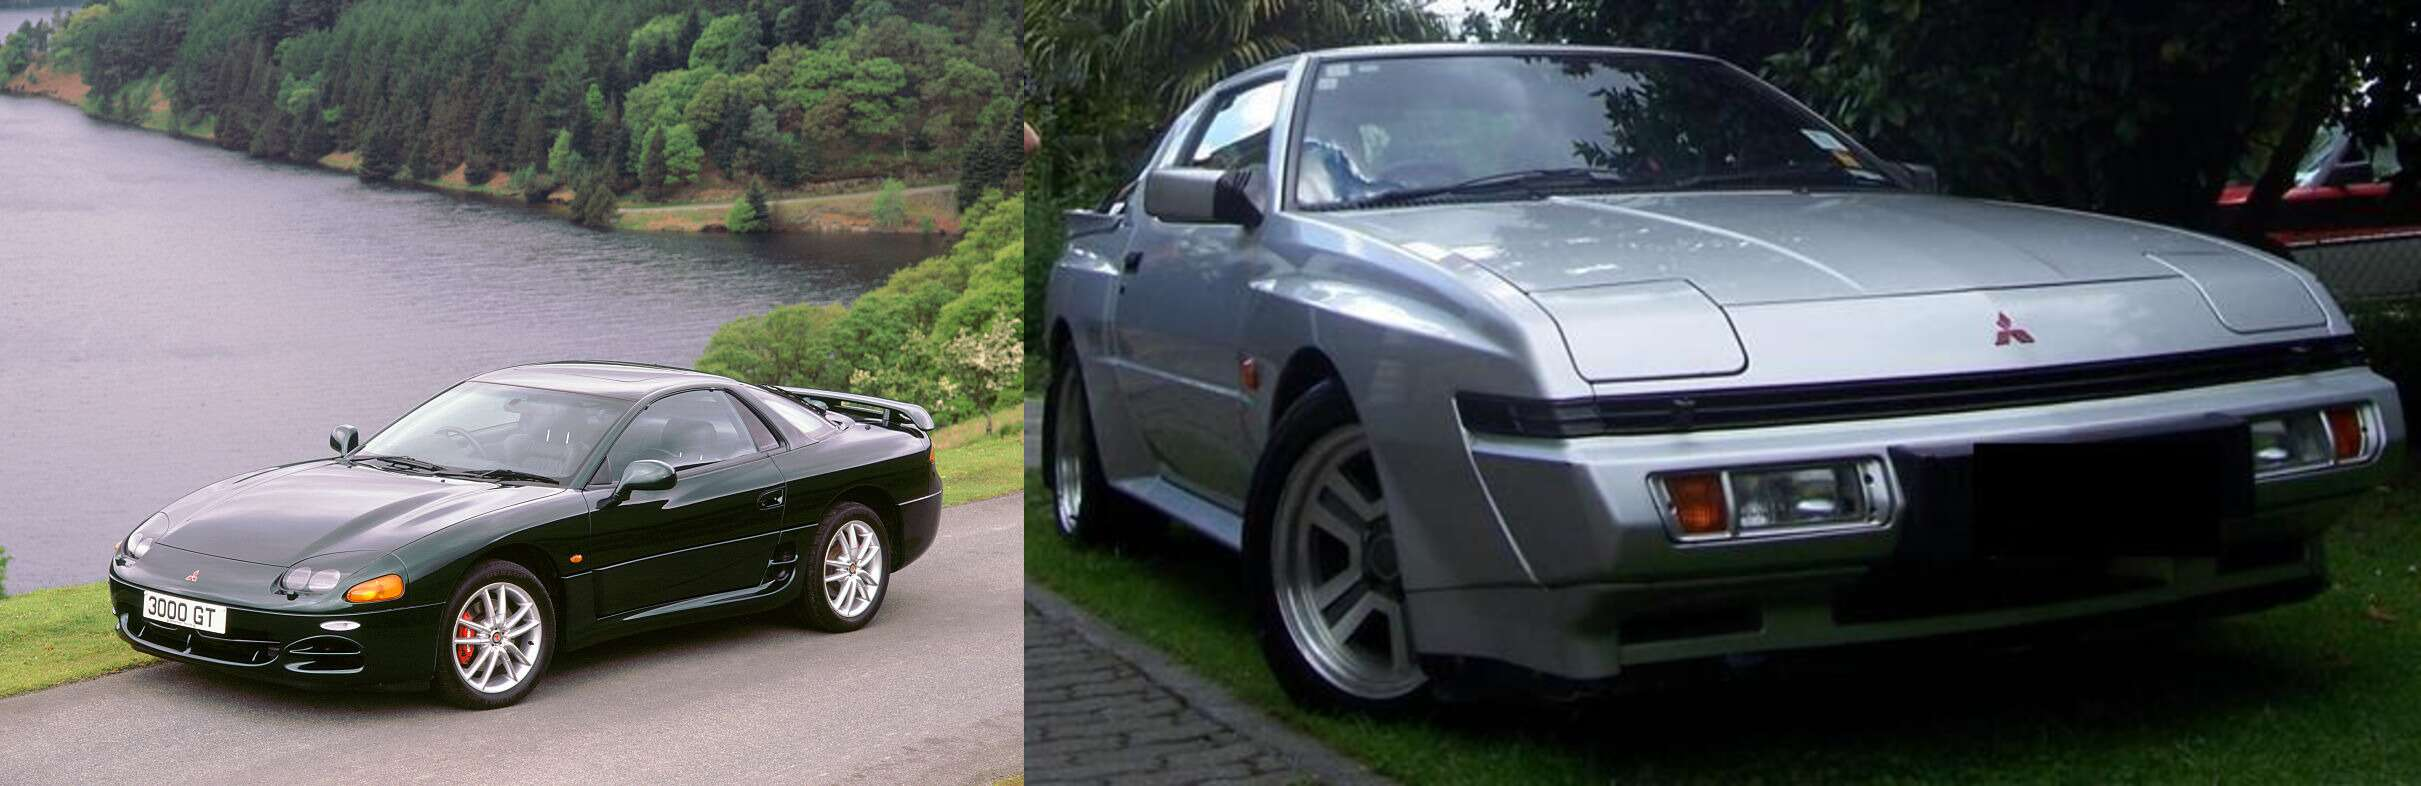 5 Weird Engine Swaps That Need To Happen The Drive Mitsubishi Starion Dodge Conquest 6g72 Dohc Tt V6 And